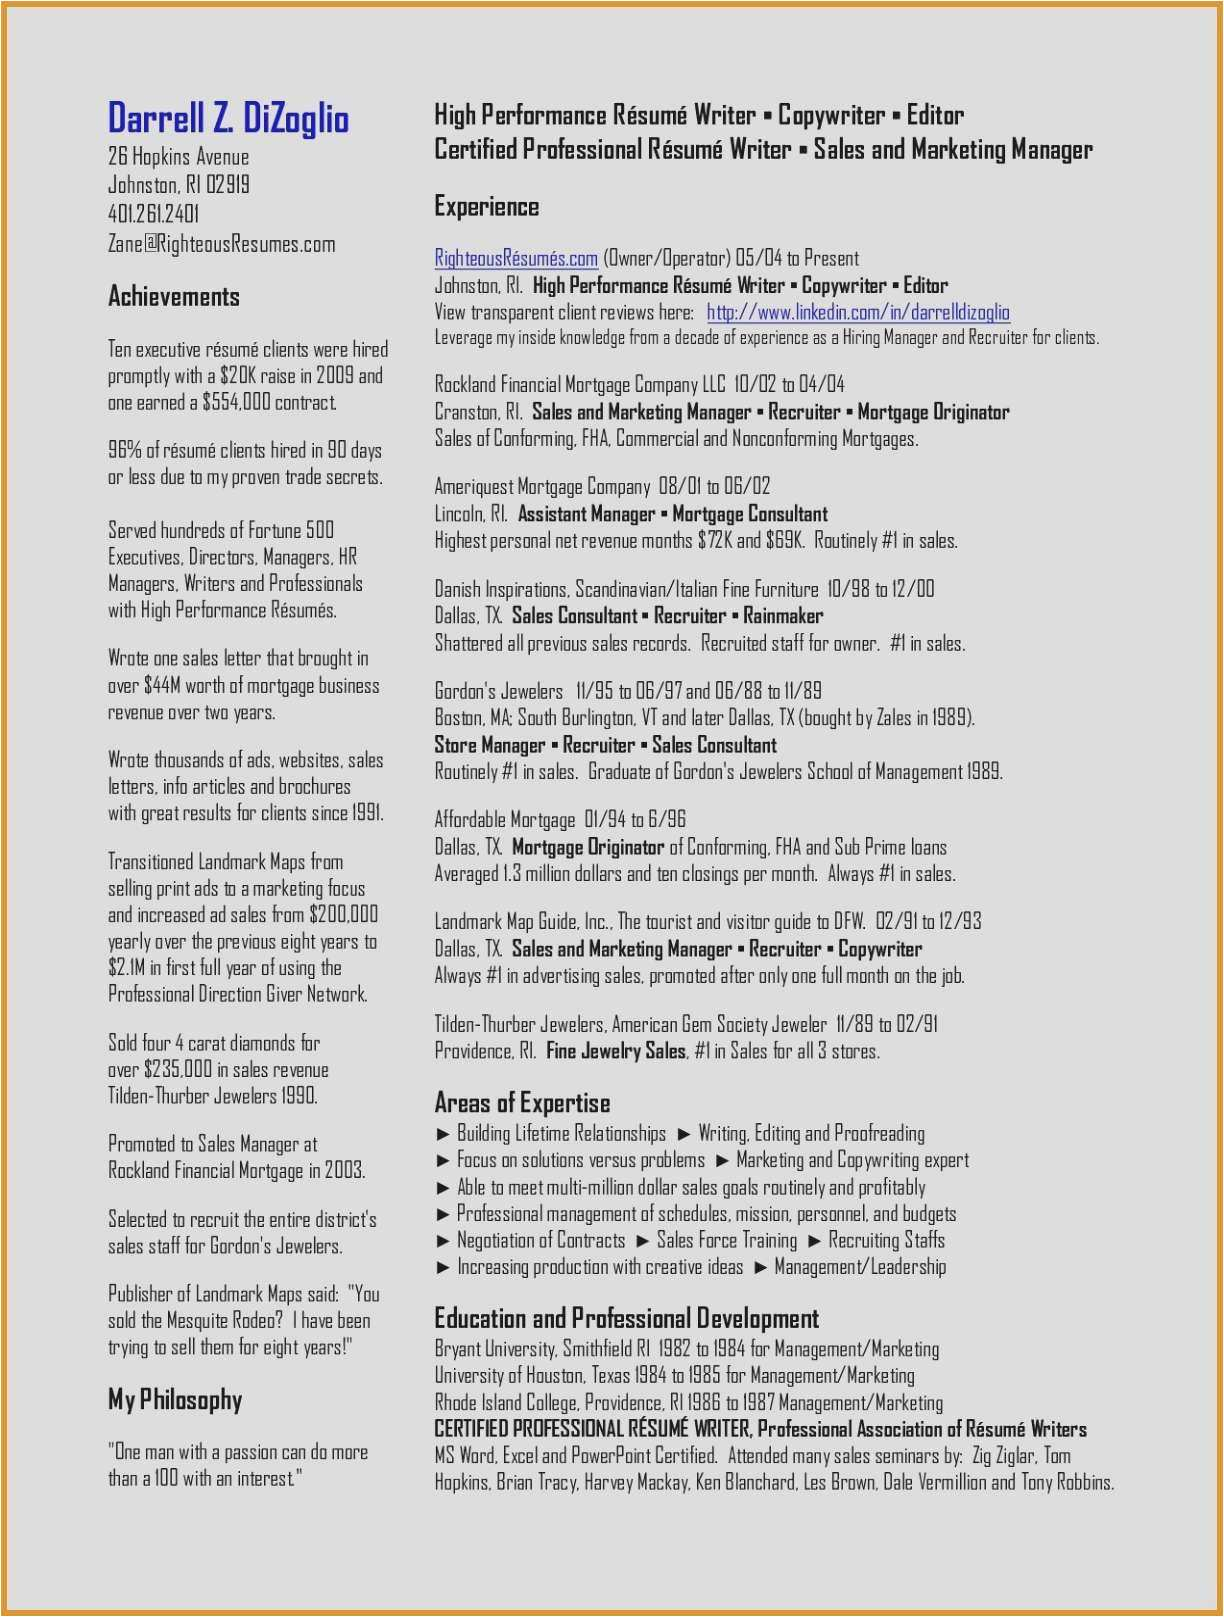 Professional association Of Resume Writers - 29 New Resume with Cover Letter Sample